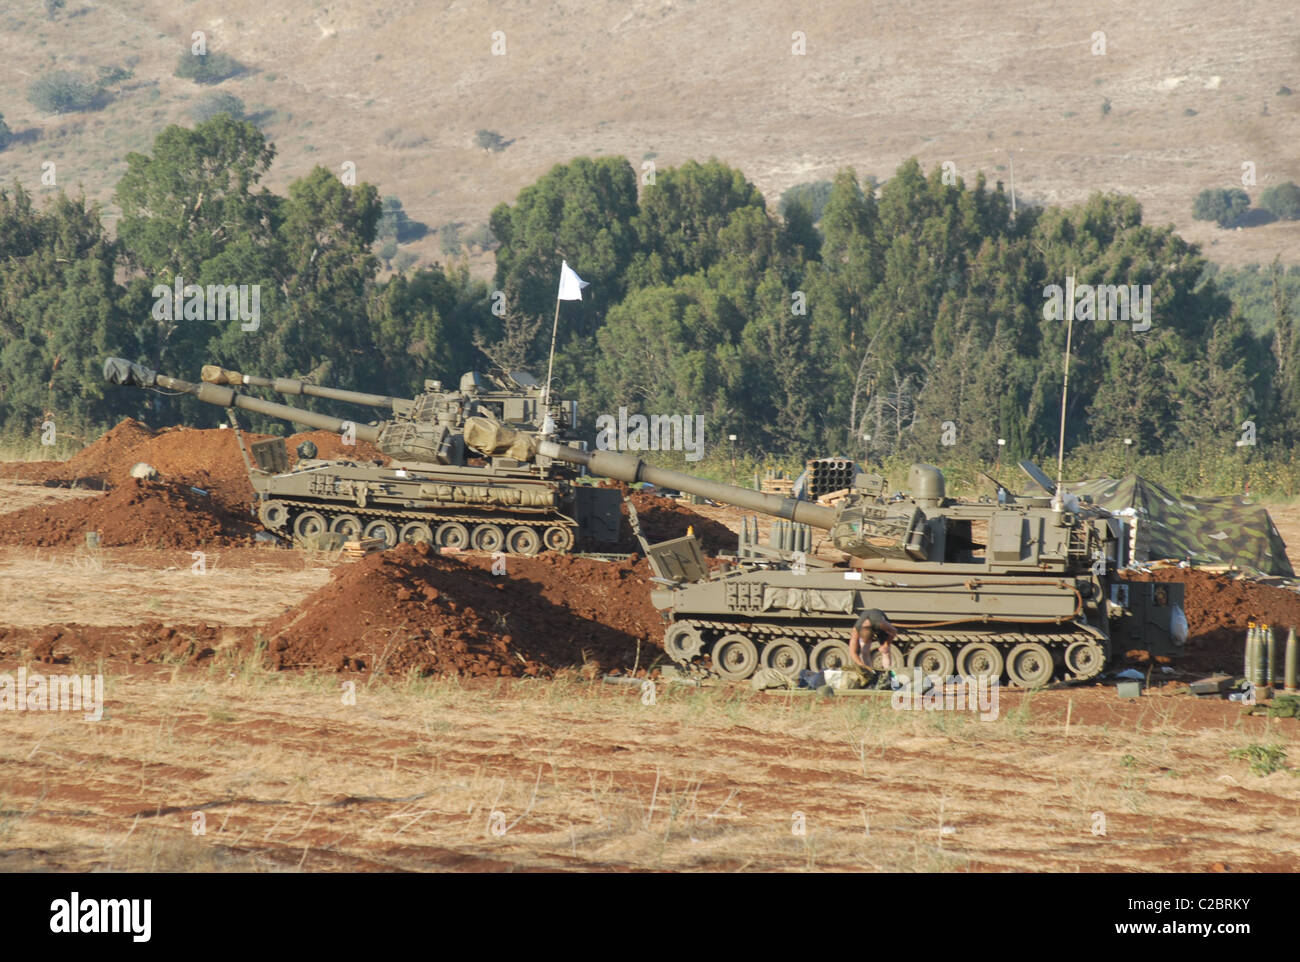 The IDF during there war with hezballah 2006 - Stock Image